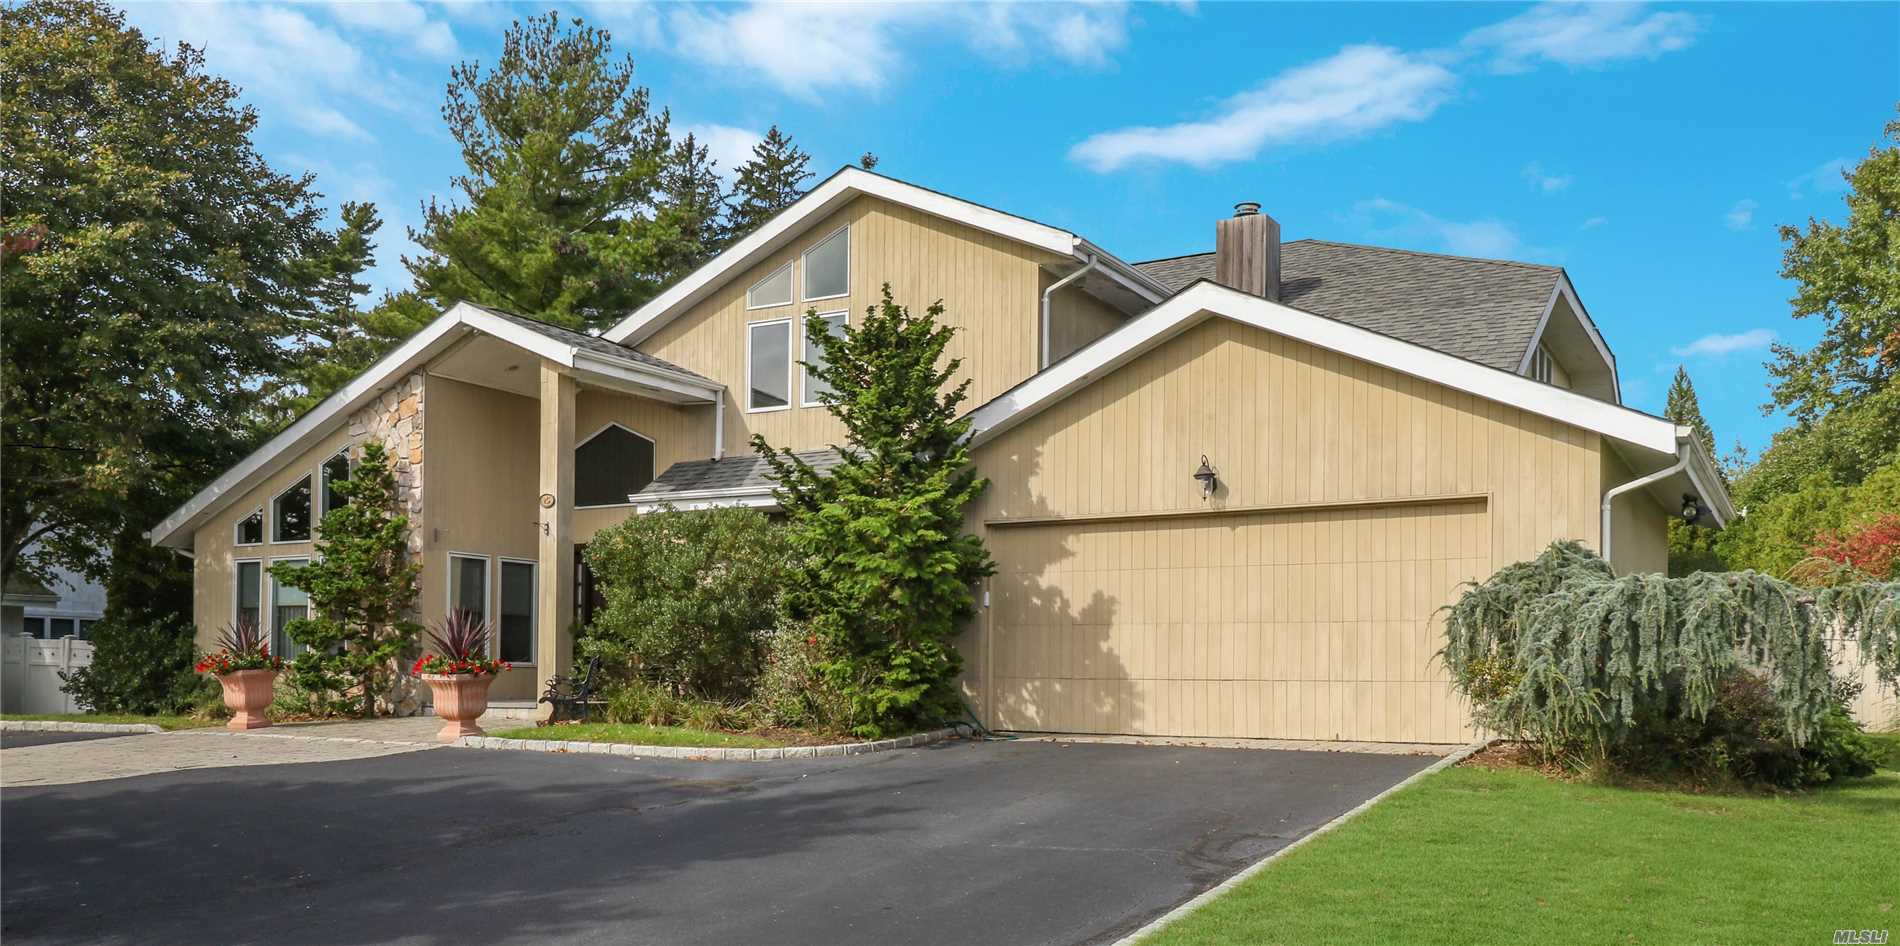 25 Kristi Dr Muttontown, NY 11753